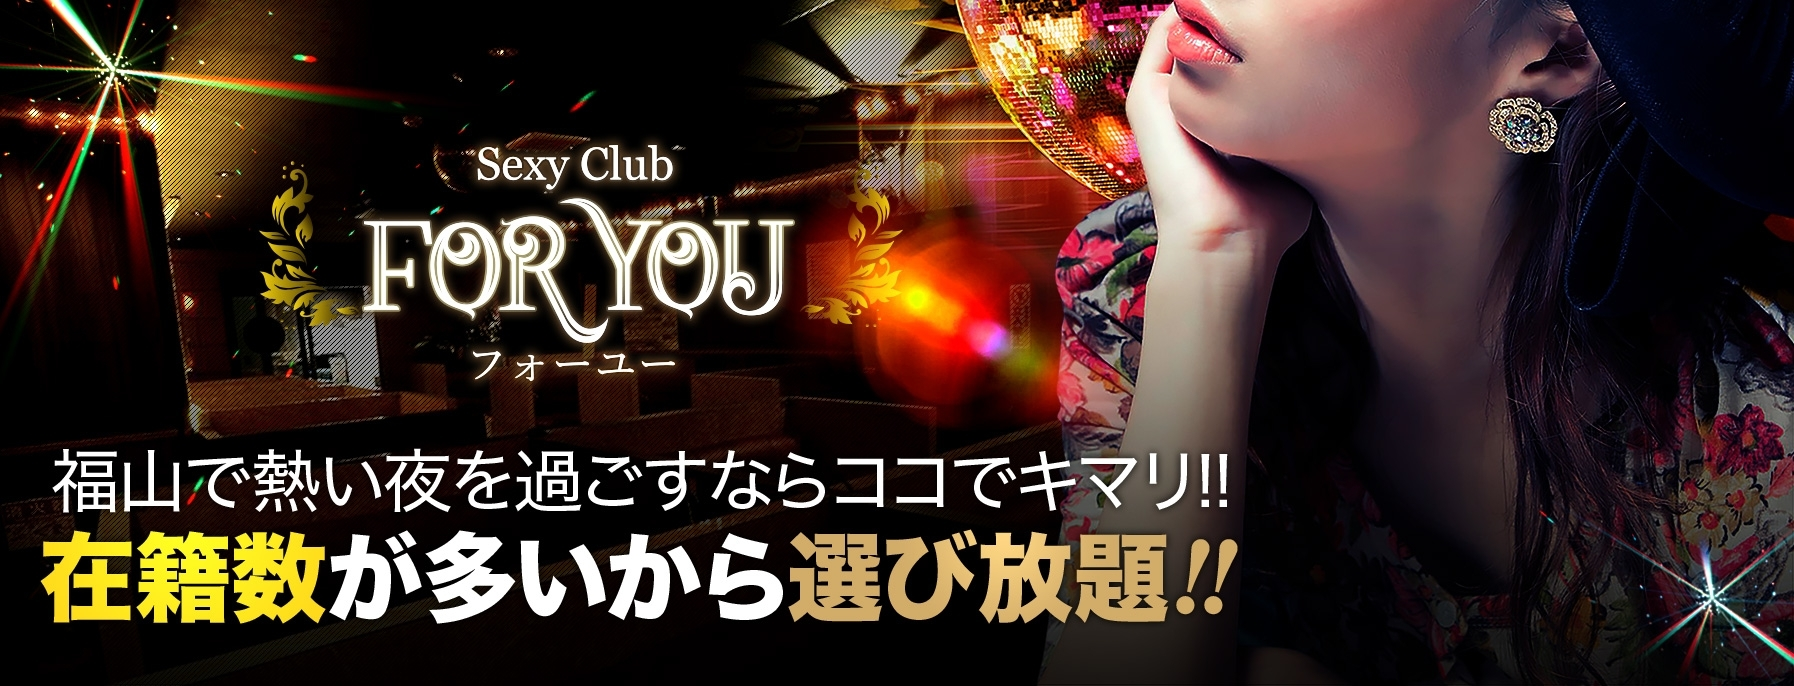 Sexy club FOR YOU~フォーユー~